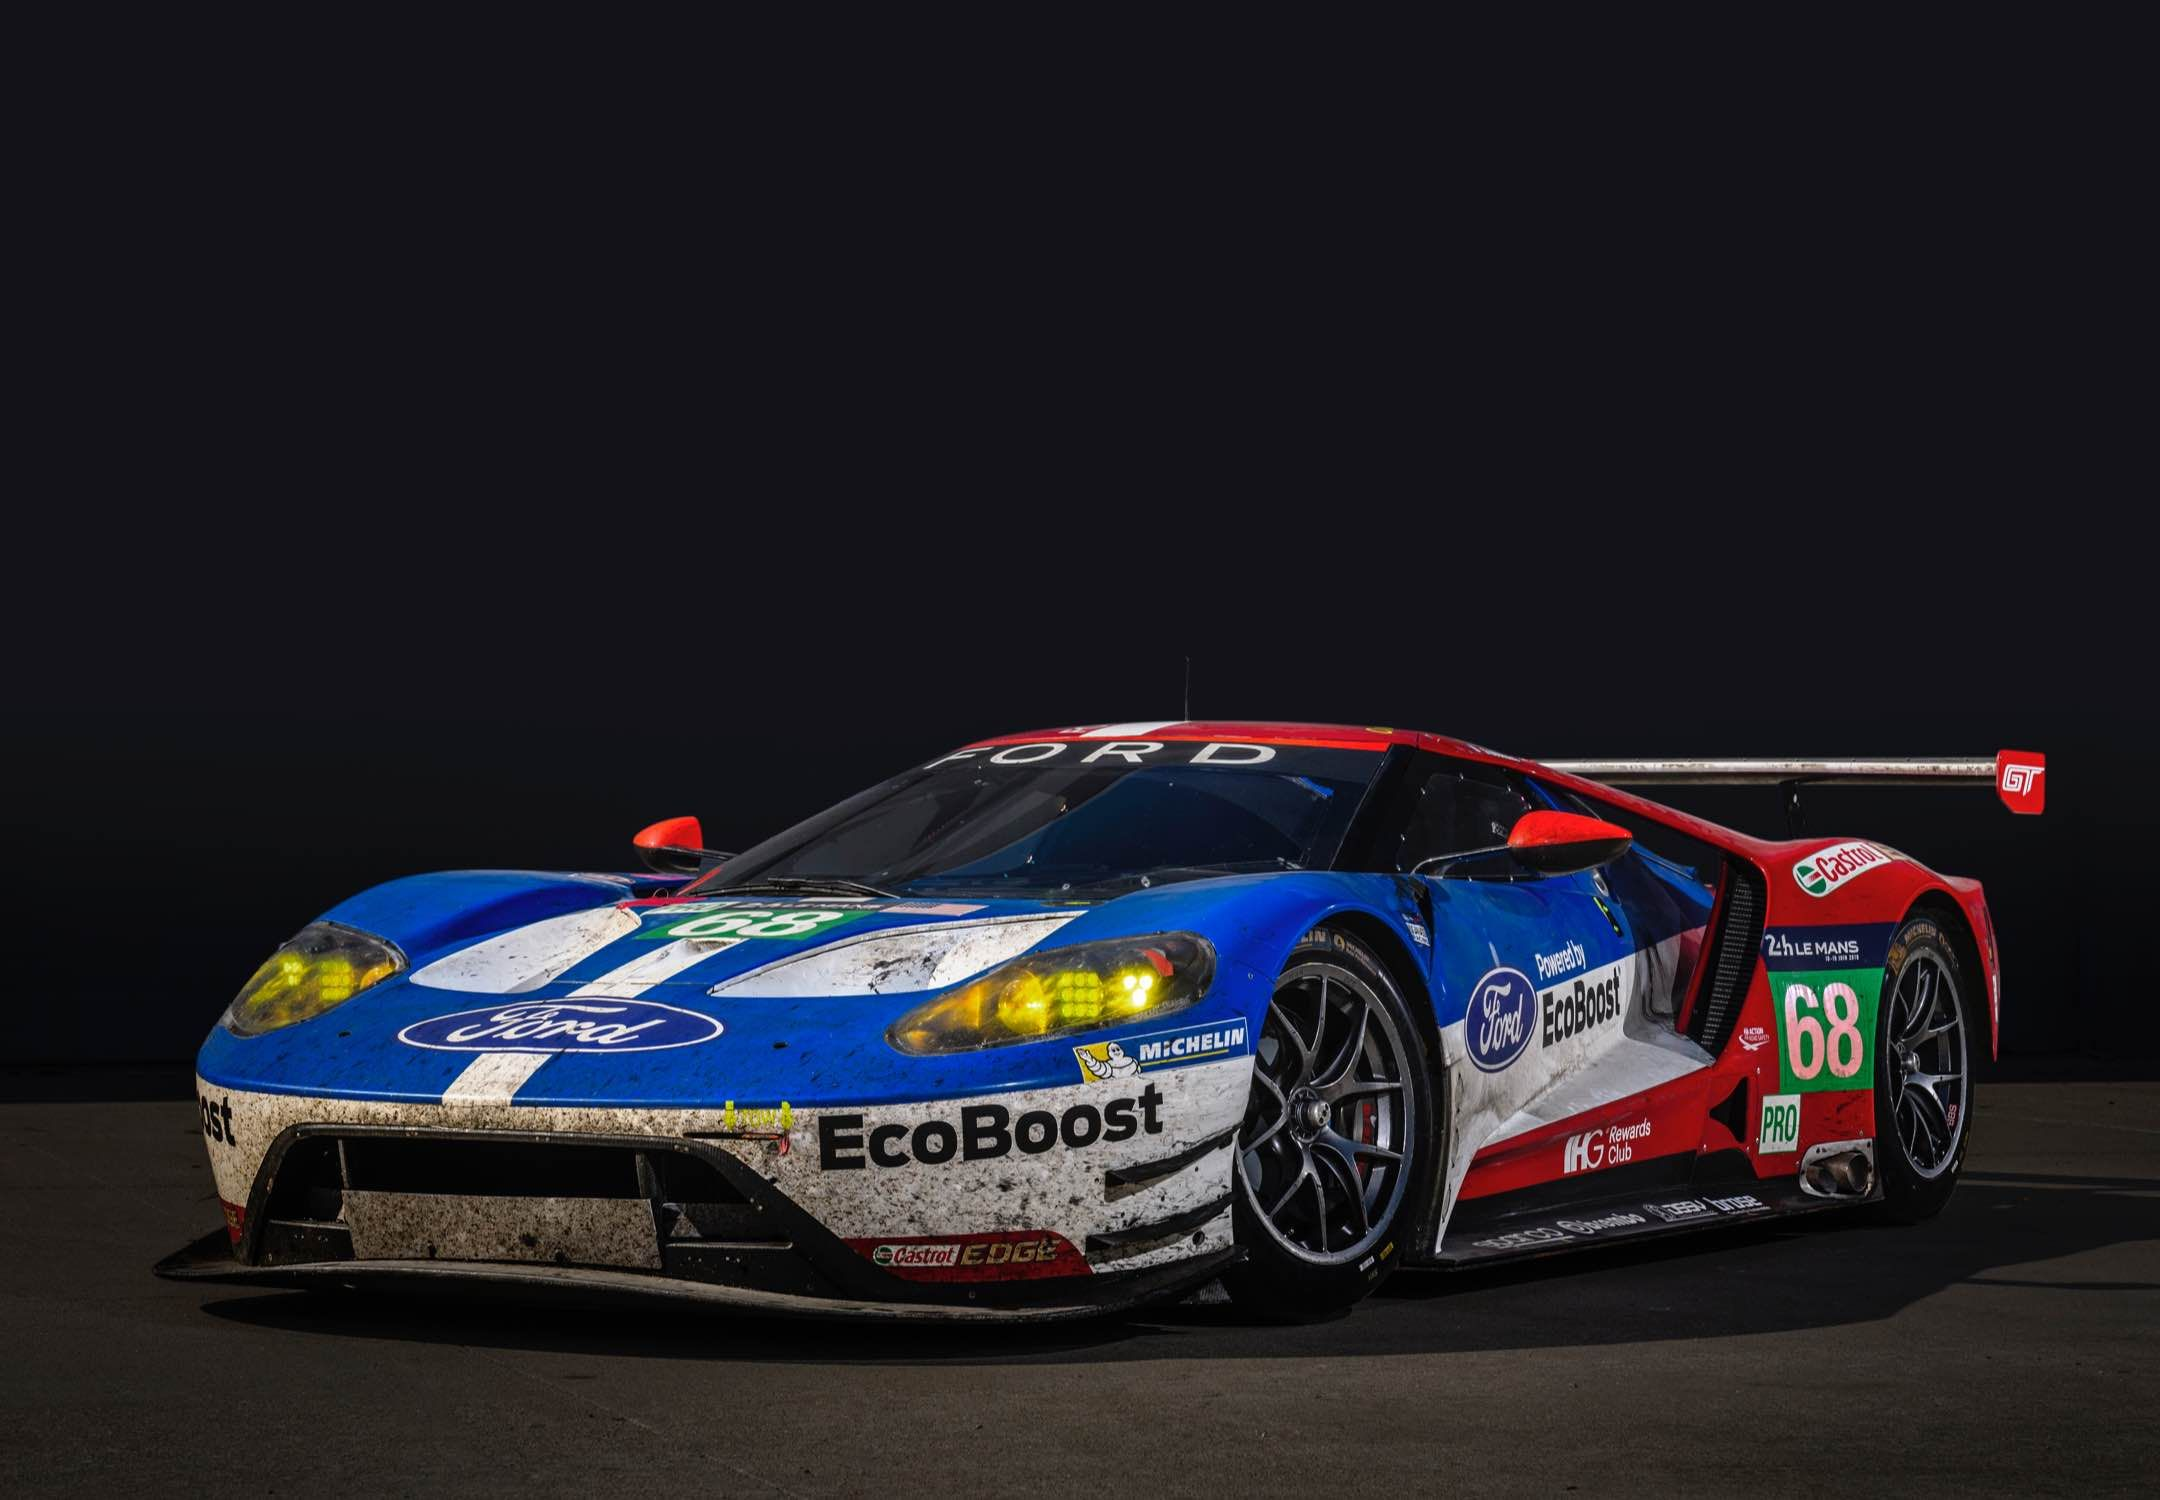 Ford Gt 3 5l Ecoboost Engine Ford Gt Ford Sports Cars Ford Sport